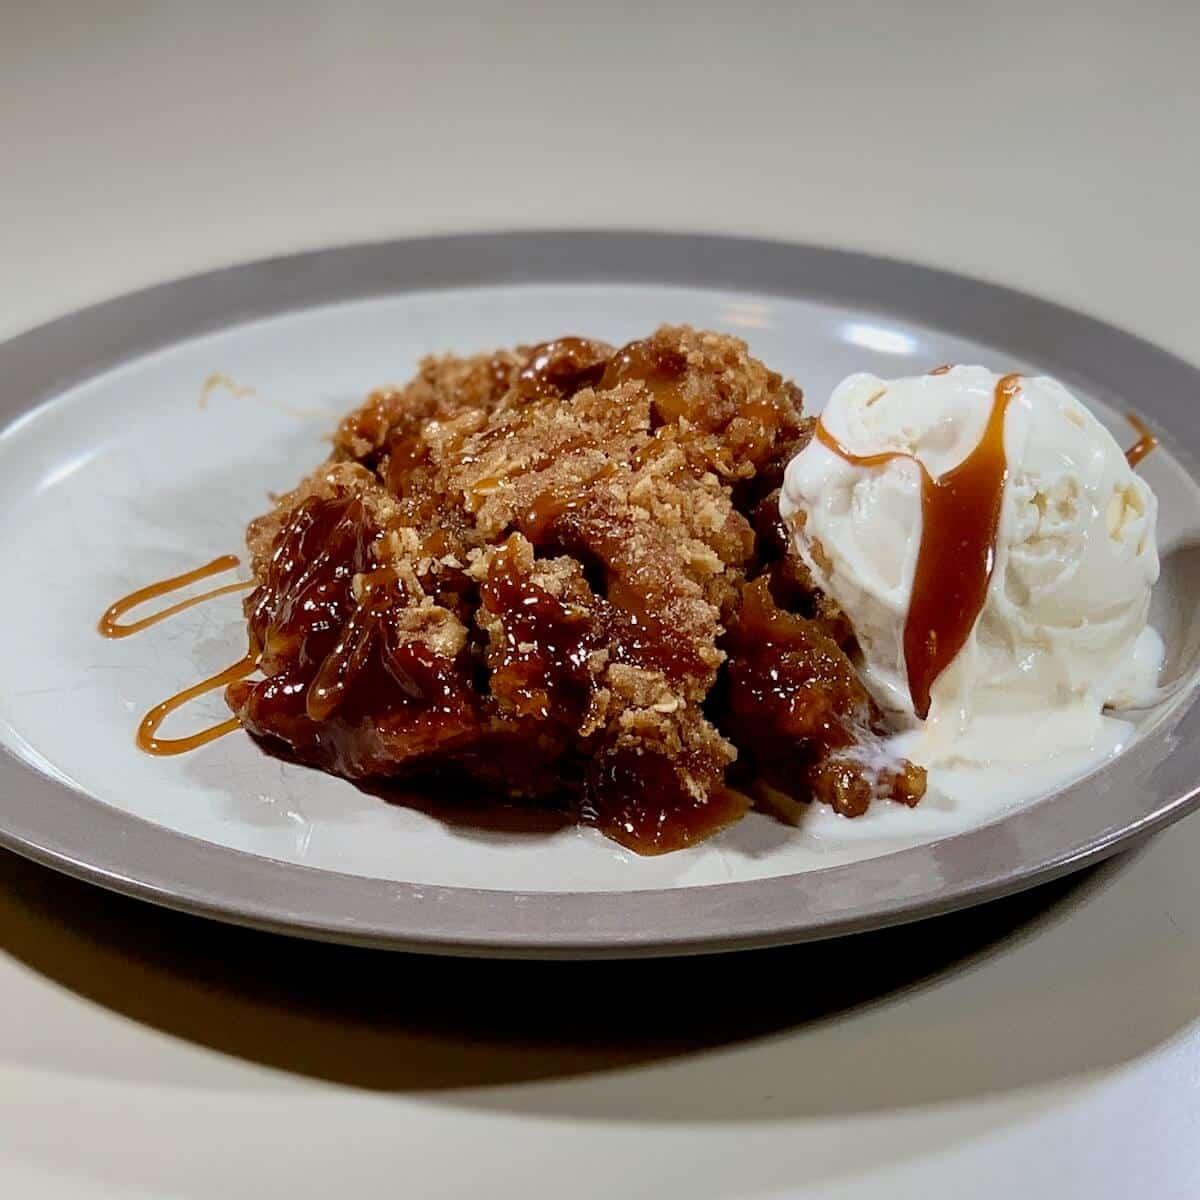 Apple Crisp on a grey-rimmed white plate with vanilla ice cream & caramel sauce on the side.